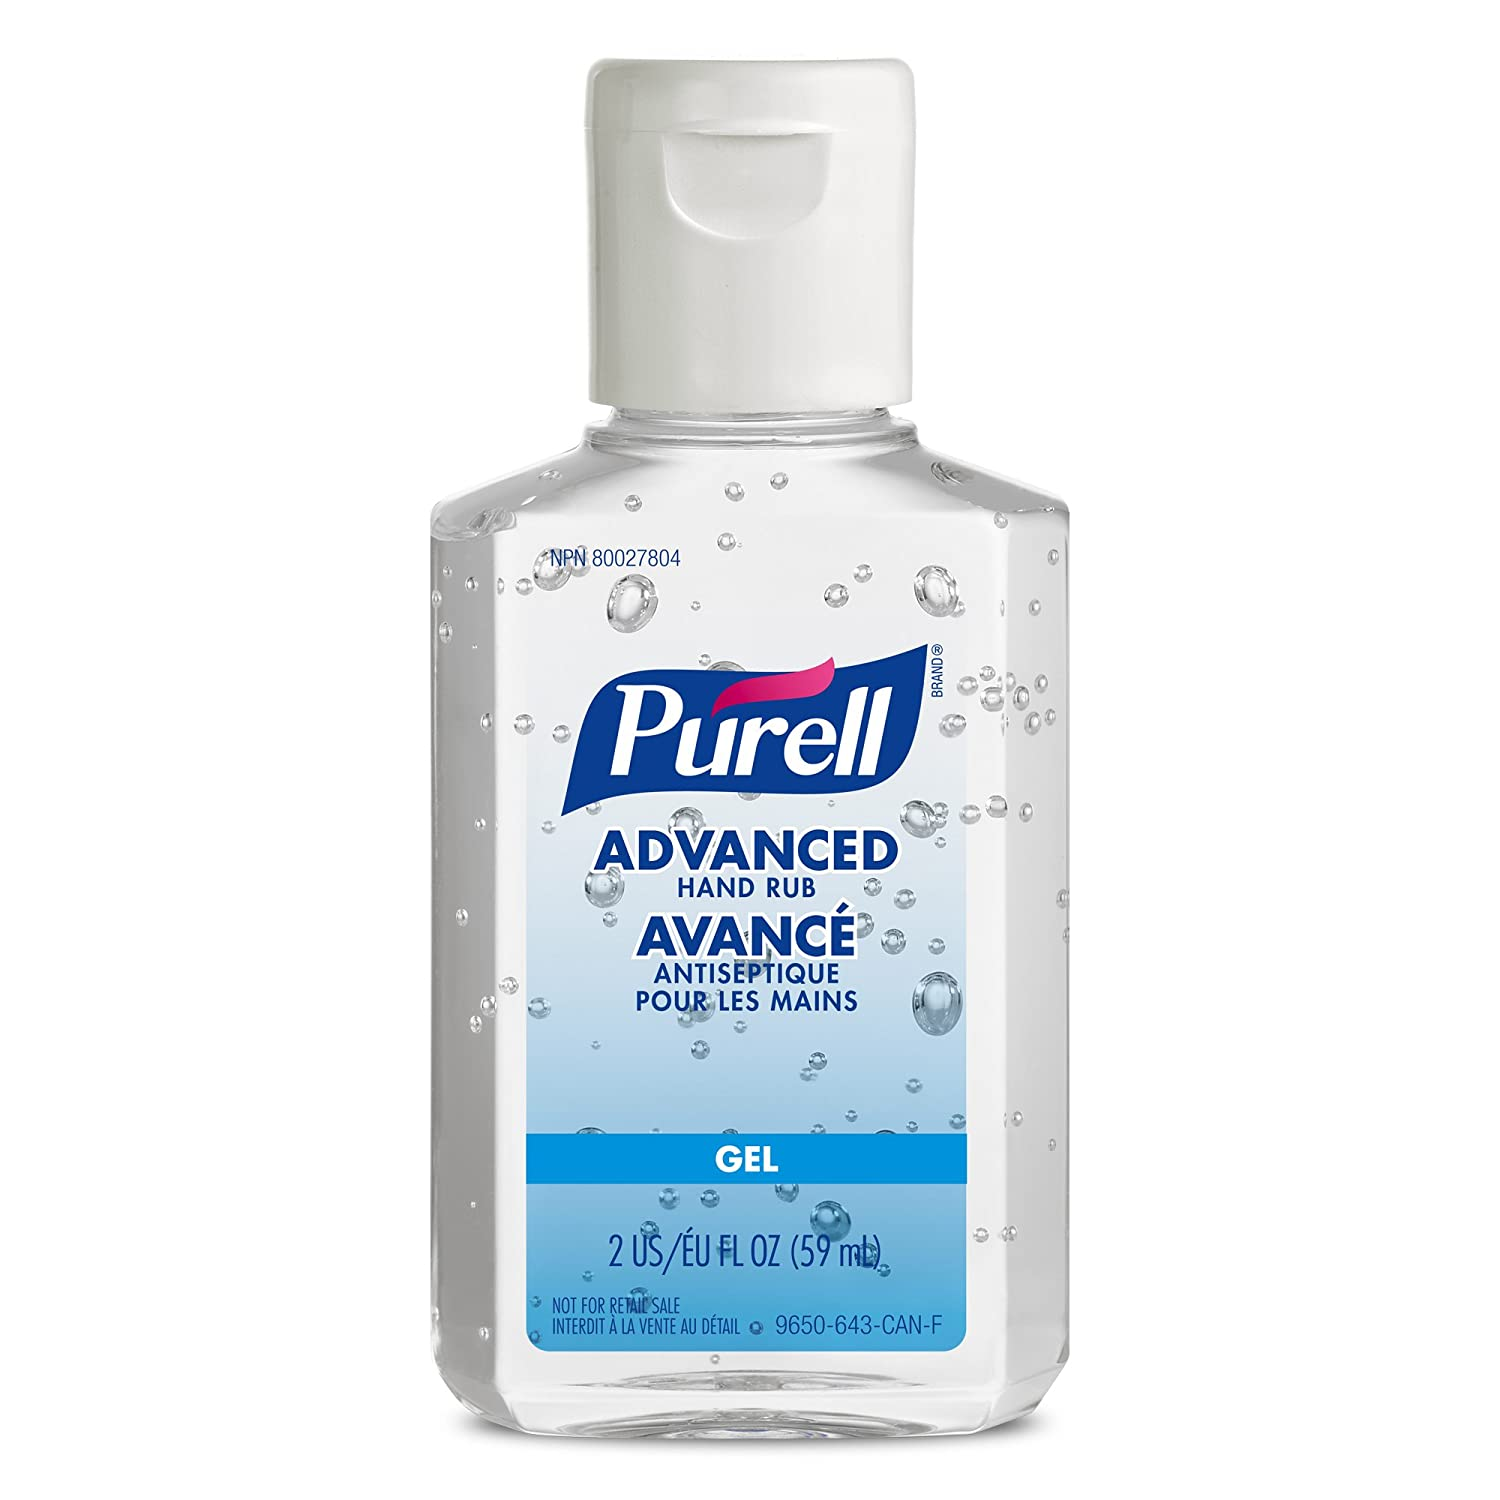 Purell 9650-24-can Advanced Hand Rub, 2 Fl Oz Bottle with Flip-cap, 24-Pack